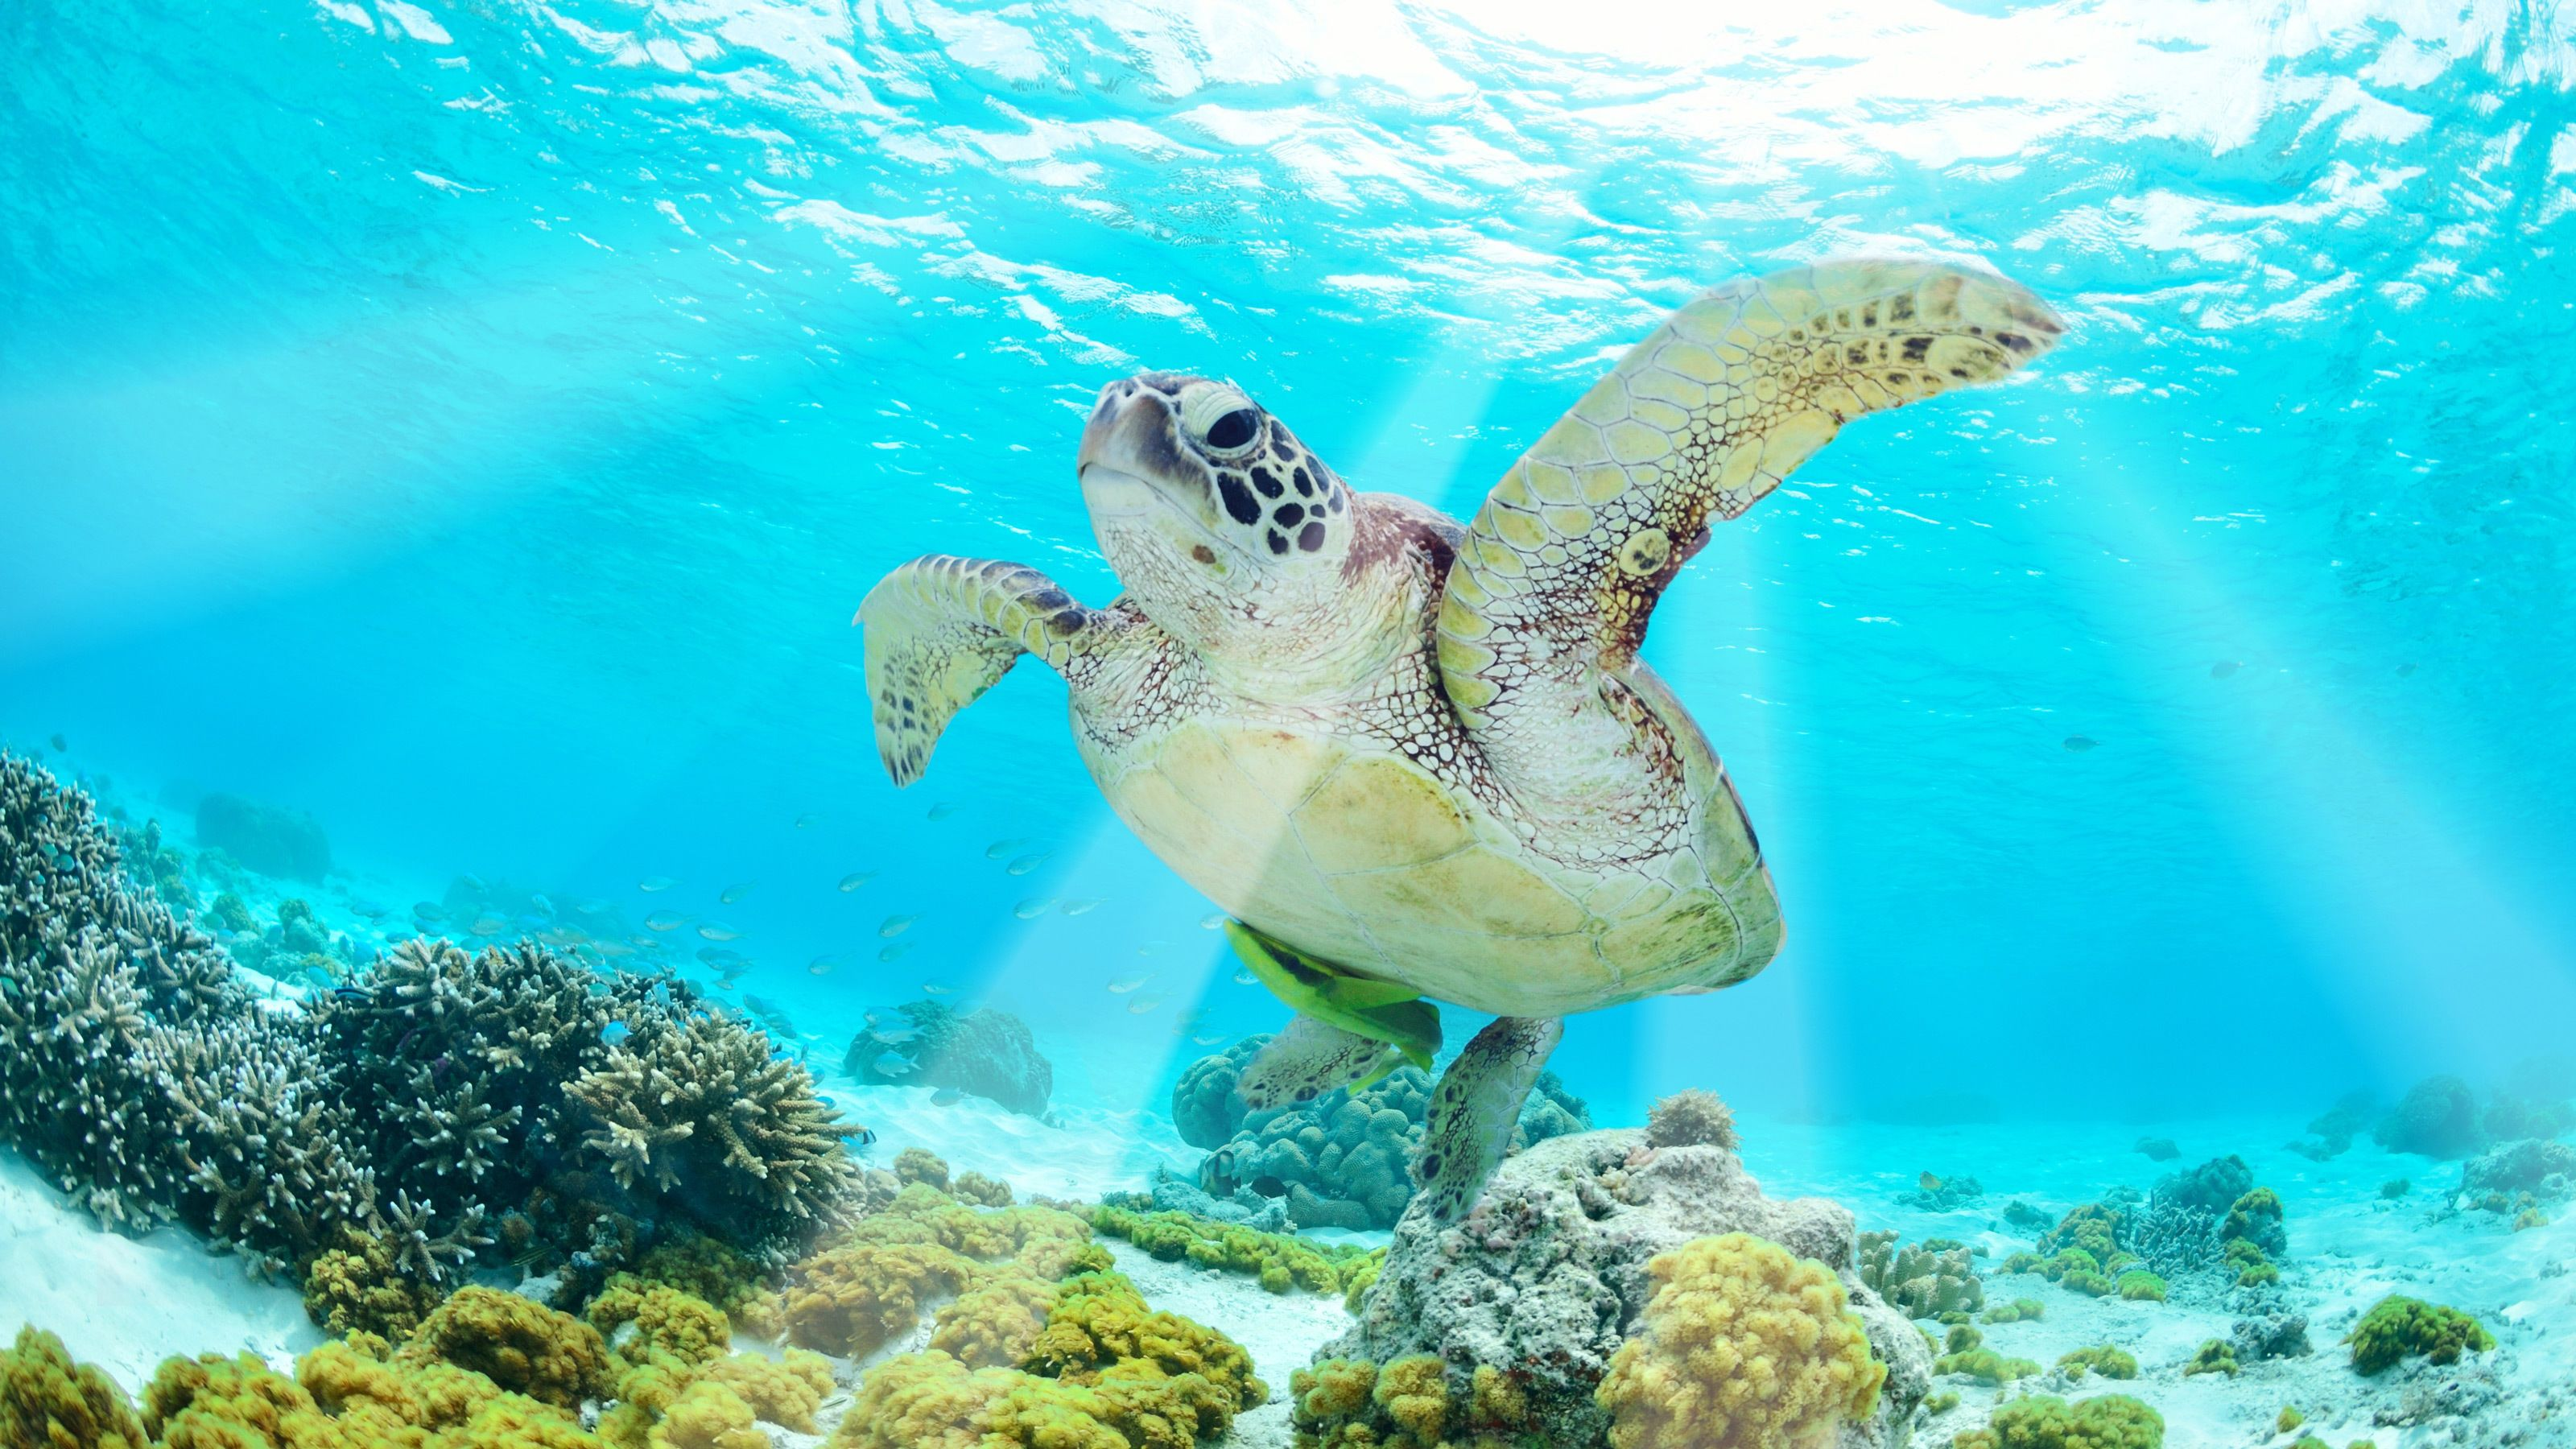 underwater scene with turtle in bahamas